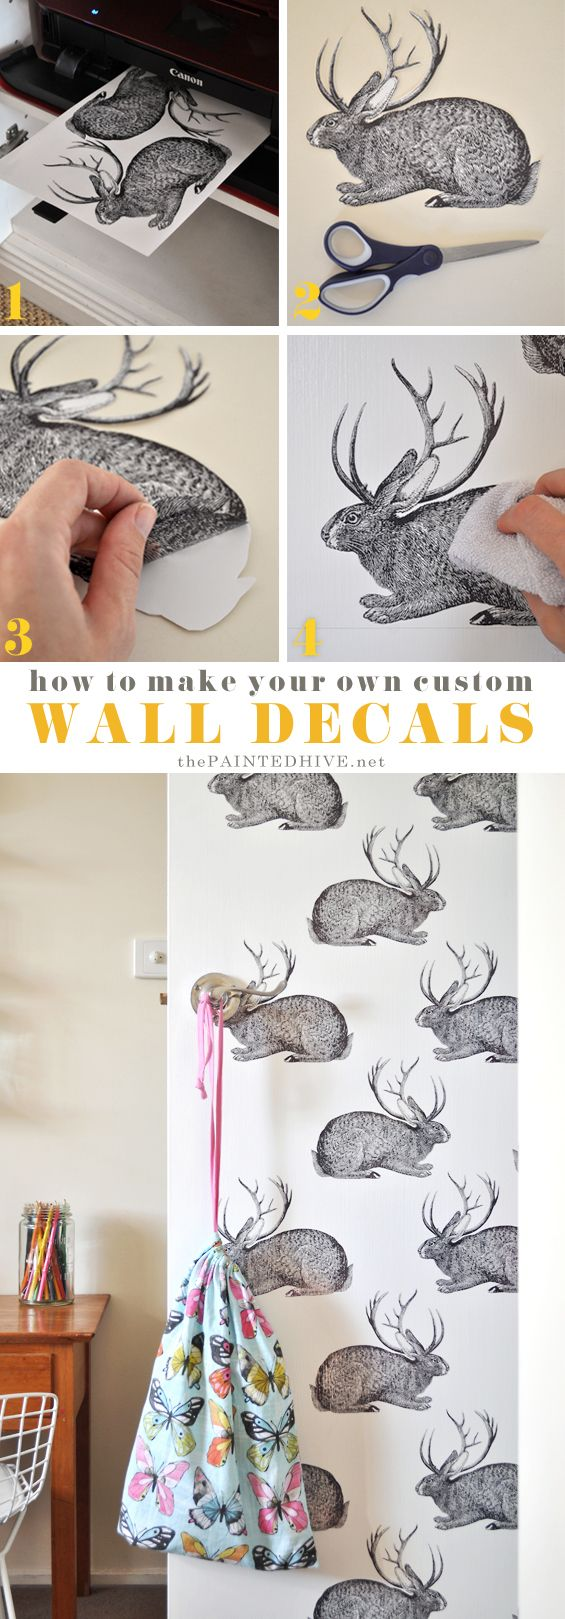 The  Best Custom Decals Ideas On Pinterest Custom Decals For - How to make your own car decals at home